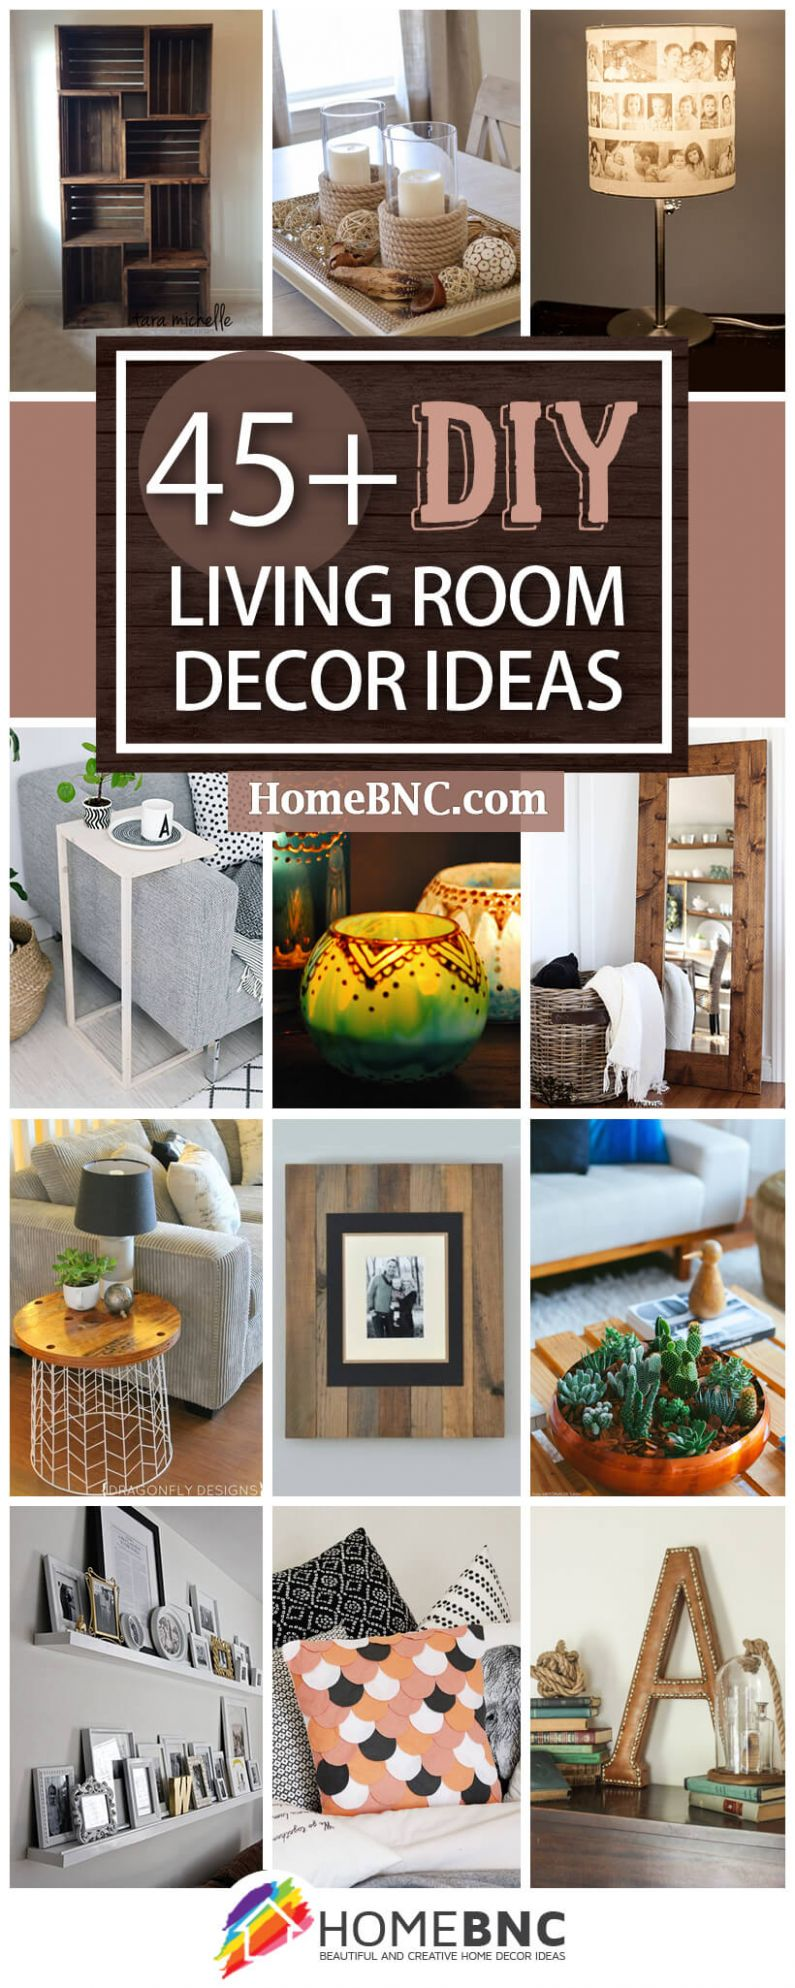 10+ Best DIY Living Room Decorating Ideas and Designs for 10 - diy home decor living room